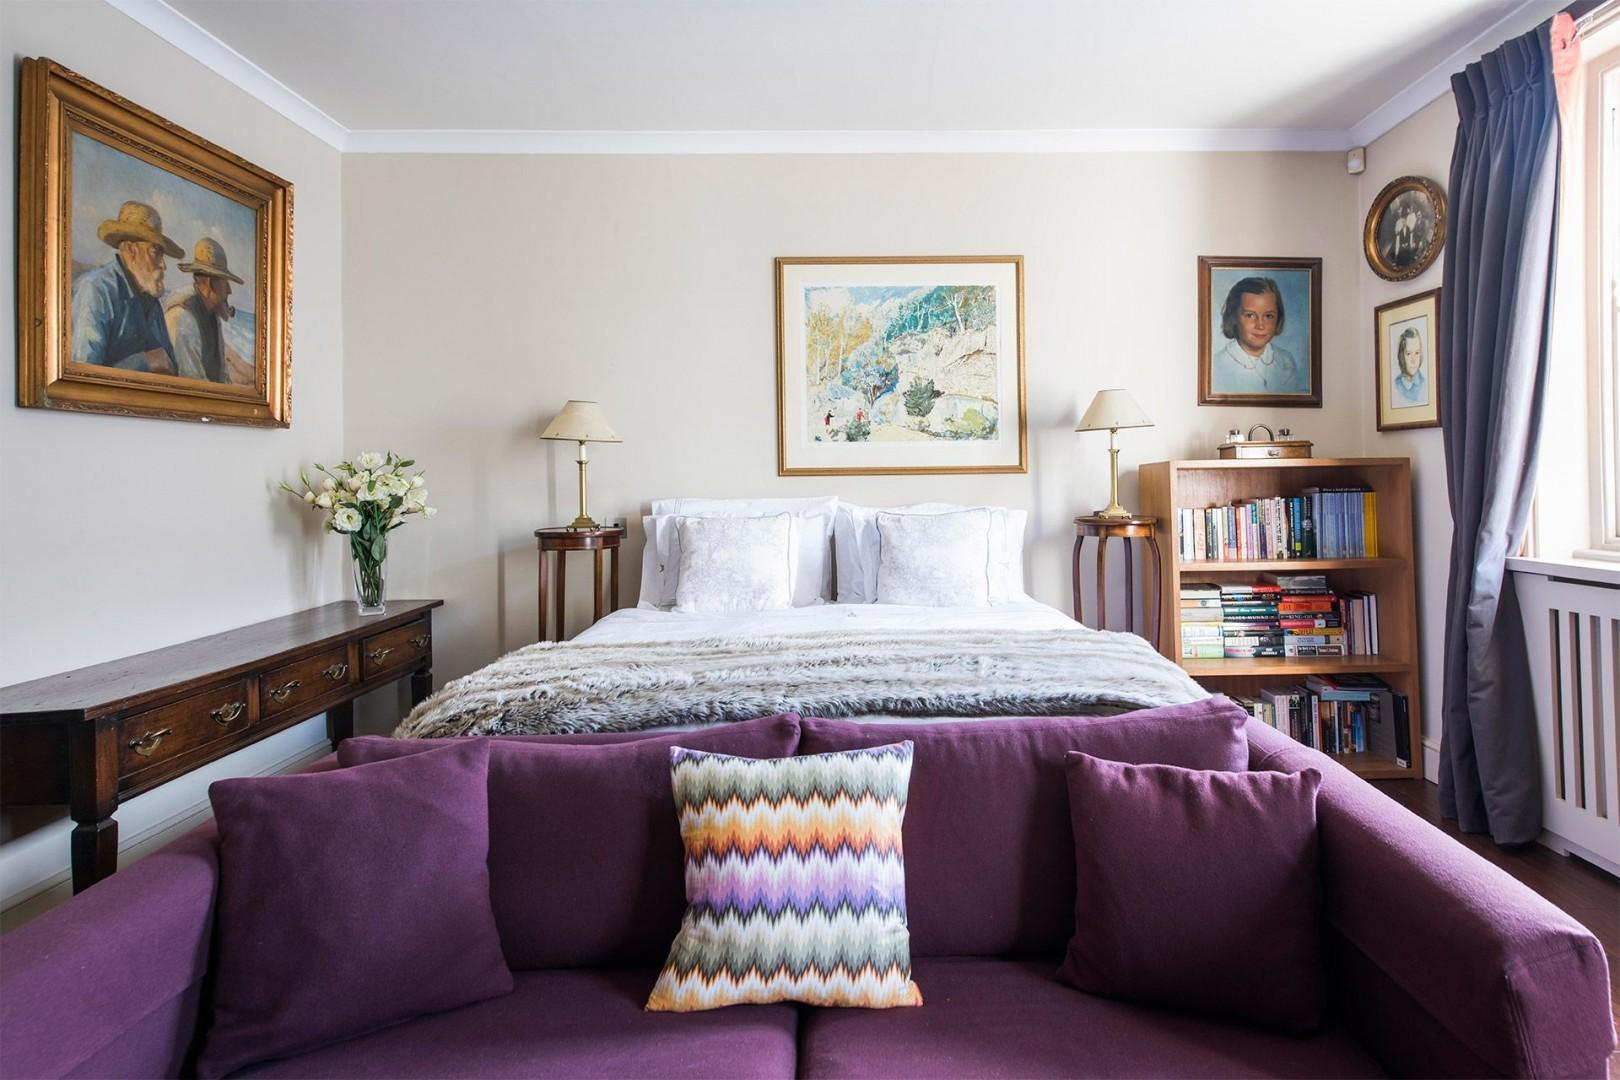 Comfortable first bedroom with a luxurious bed